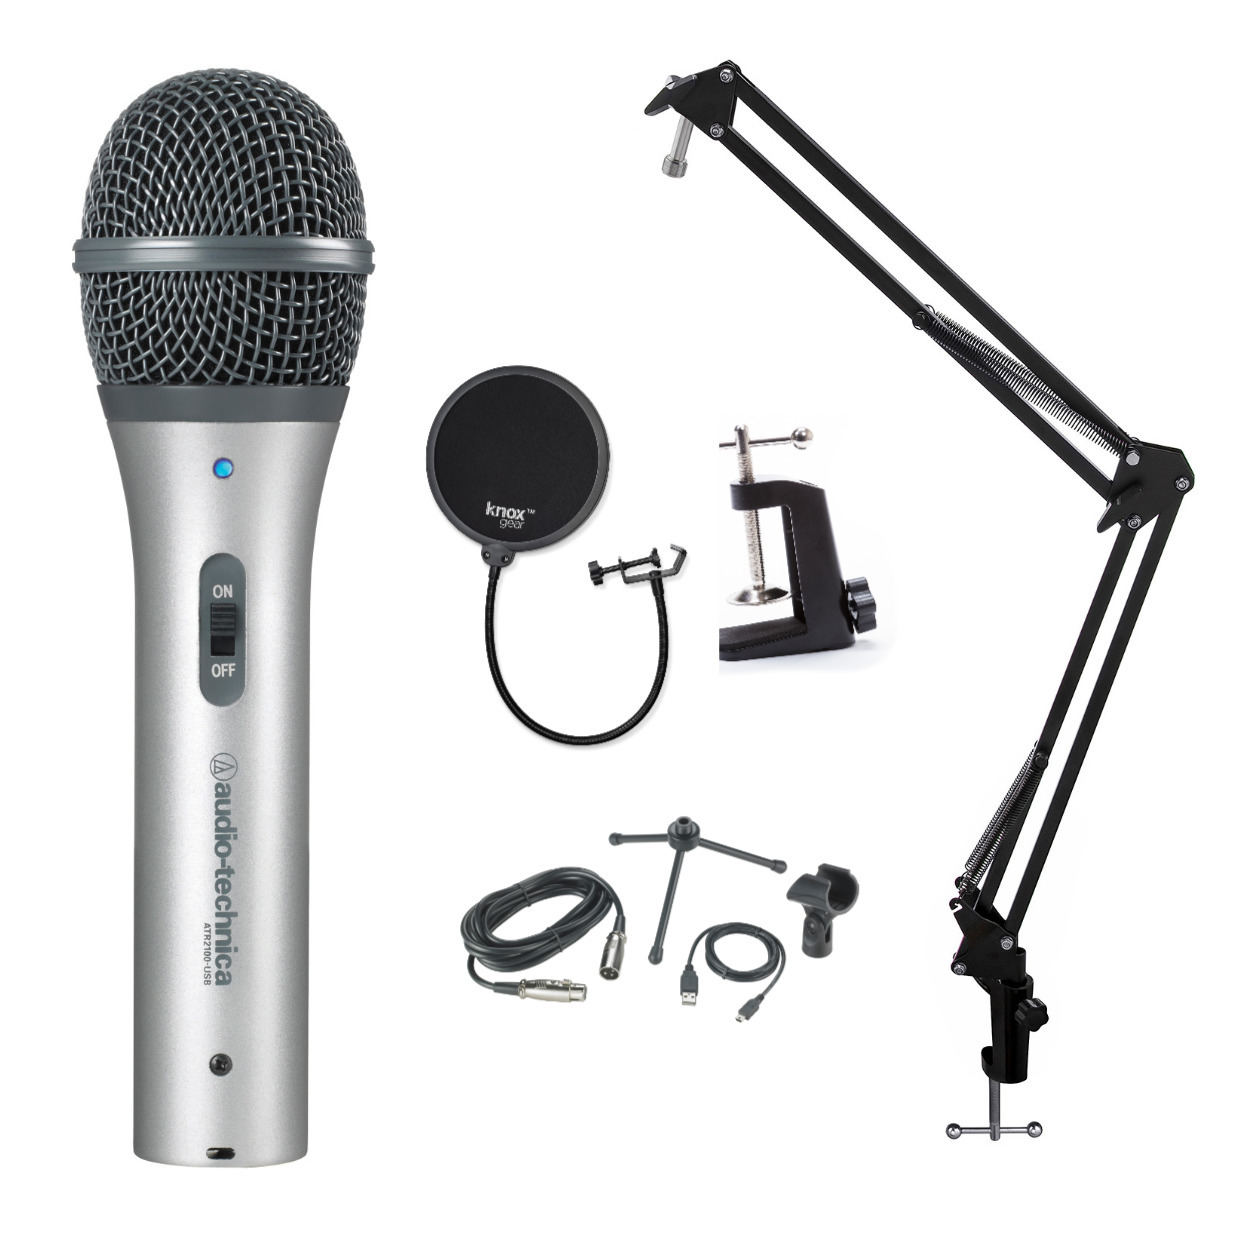 Audio-Technica Microphone with Knox Gear Pop Filter, Boom Arm and Shock Mount